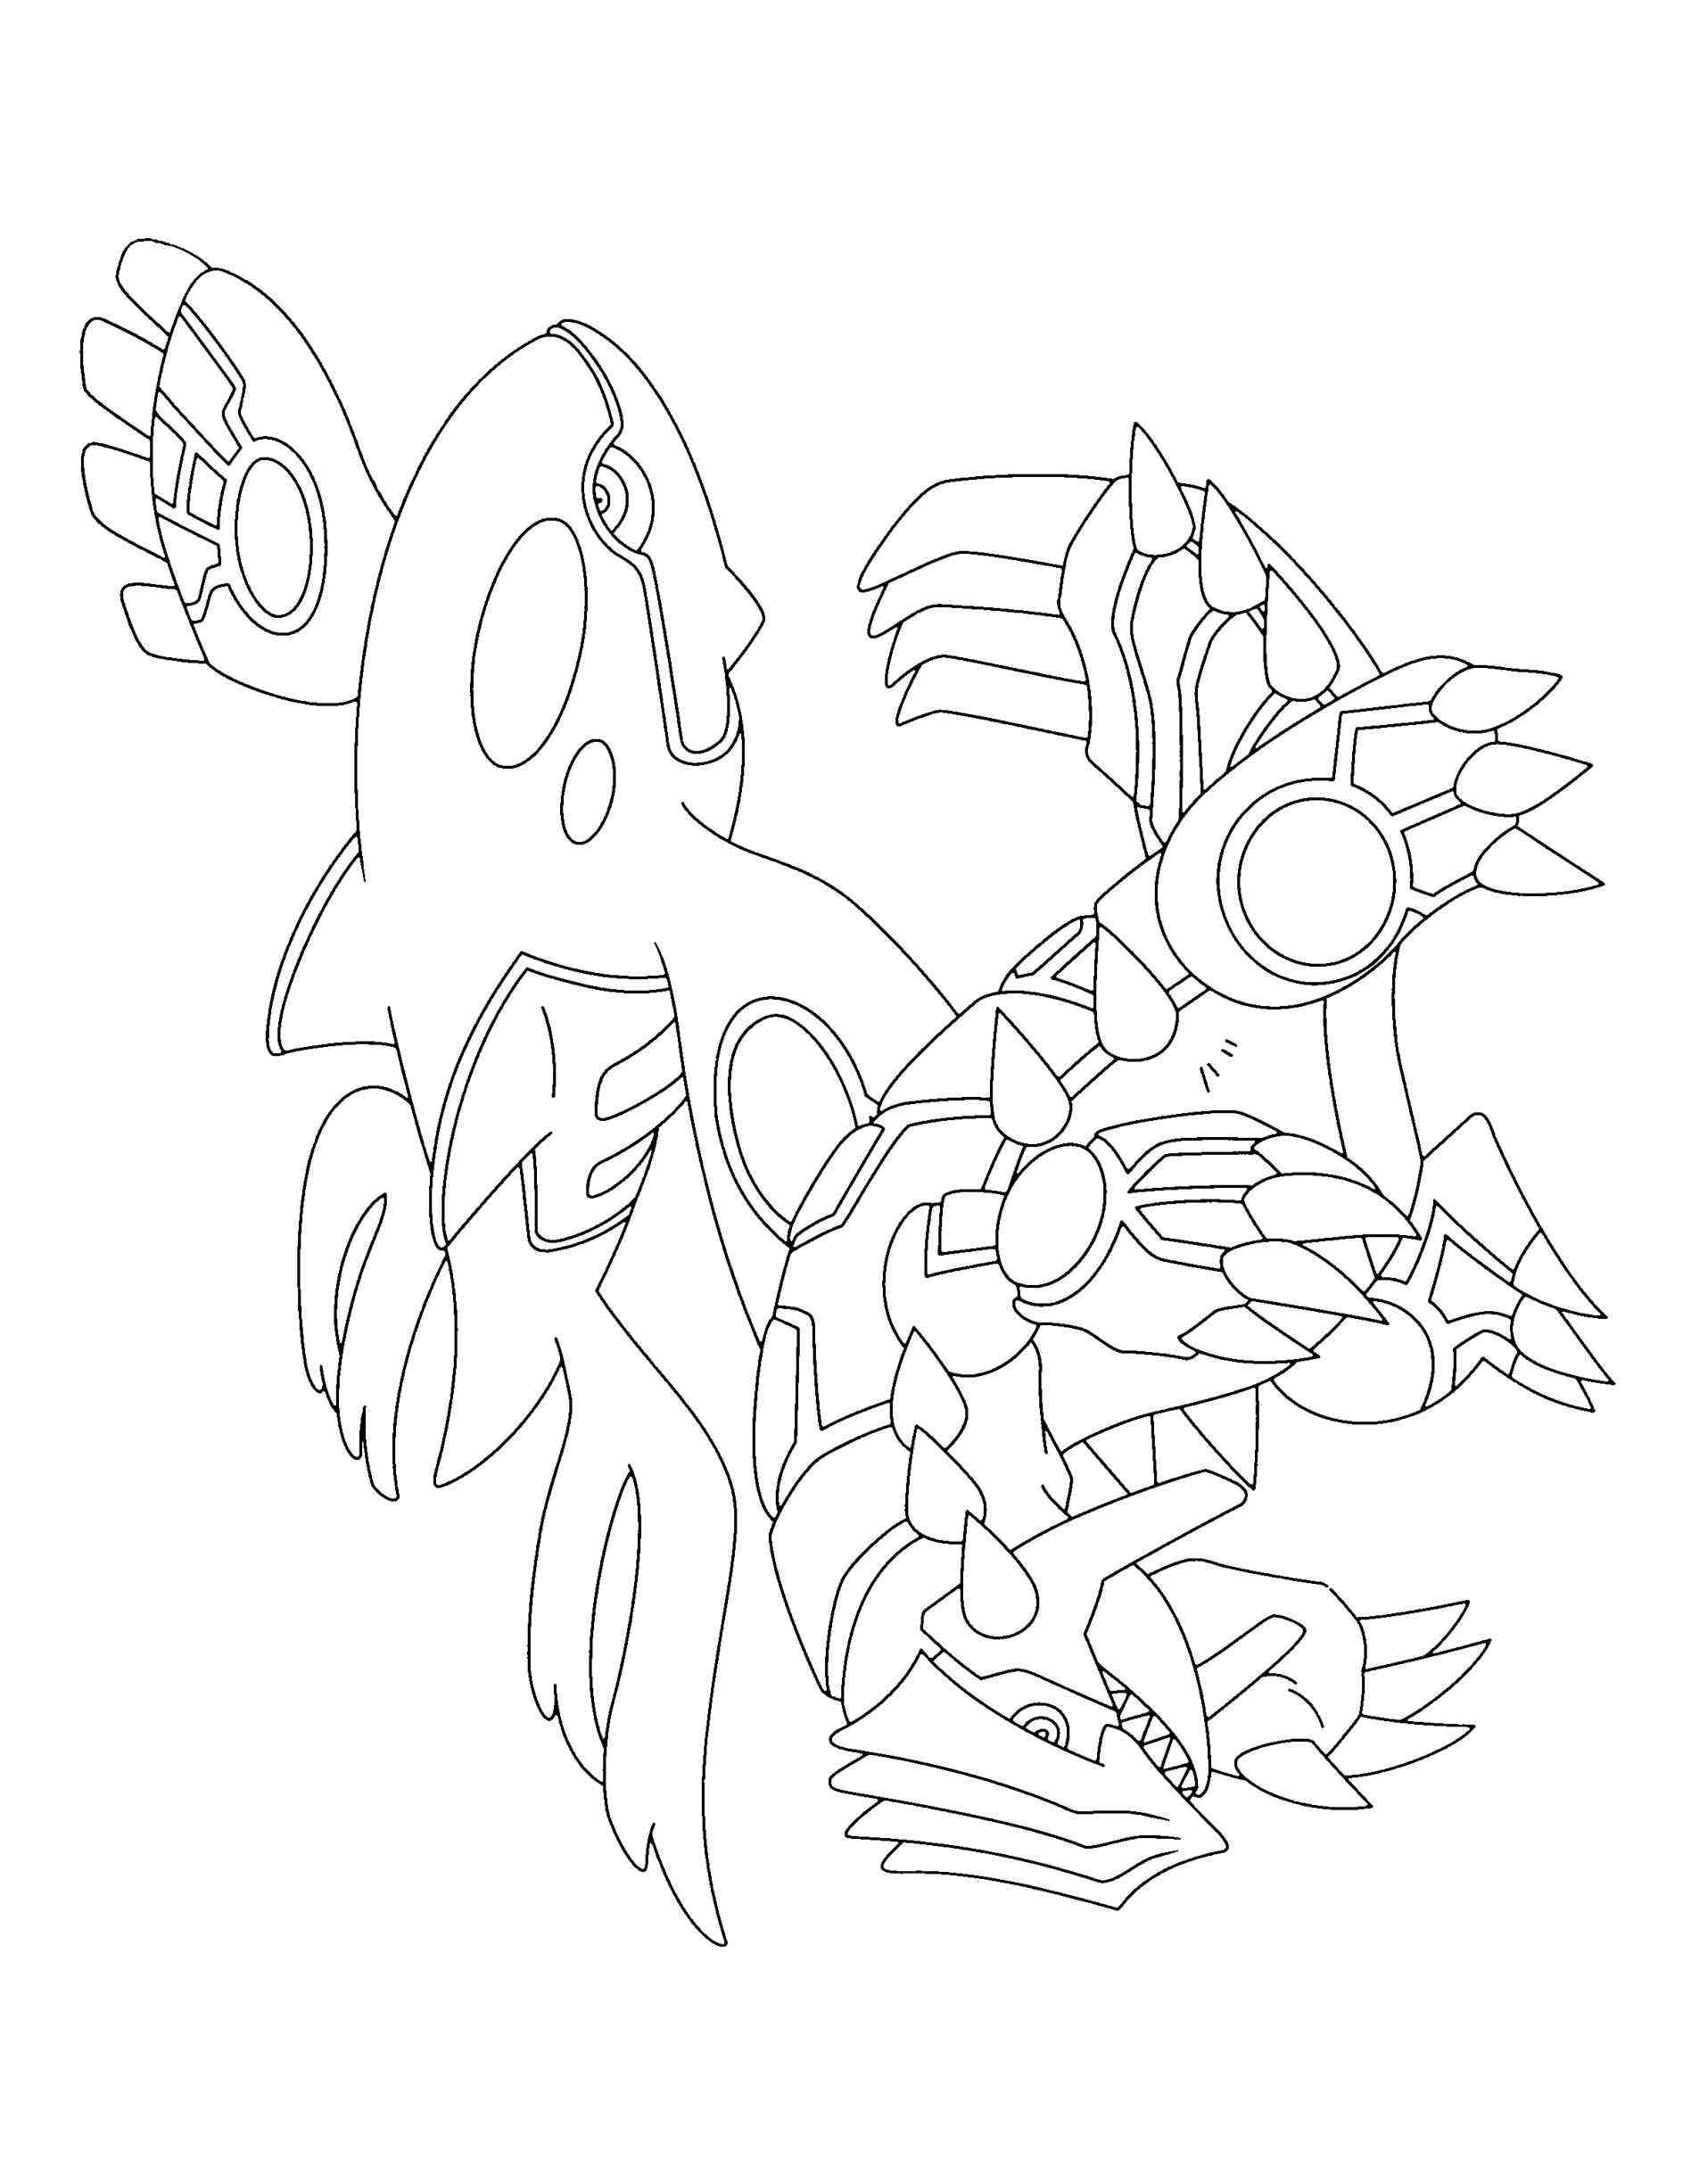 Pin kyogre coloring pages on pinterest for Primal groudon coloring page